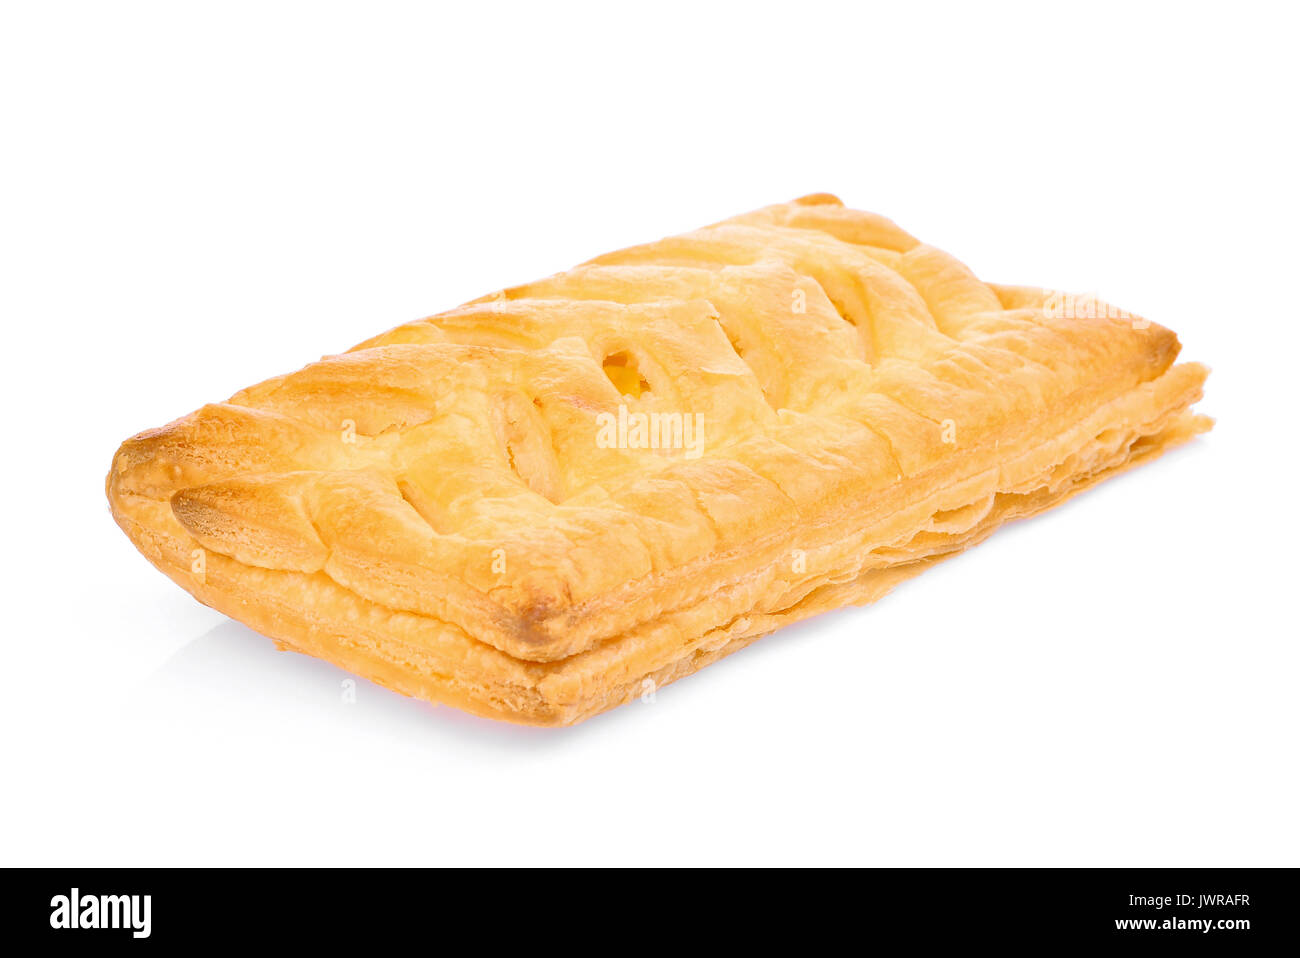 corn filled pie, fast food or junk food isolated on white background - Stock Image